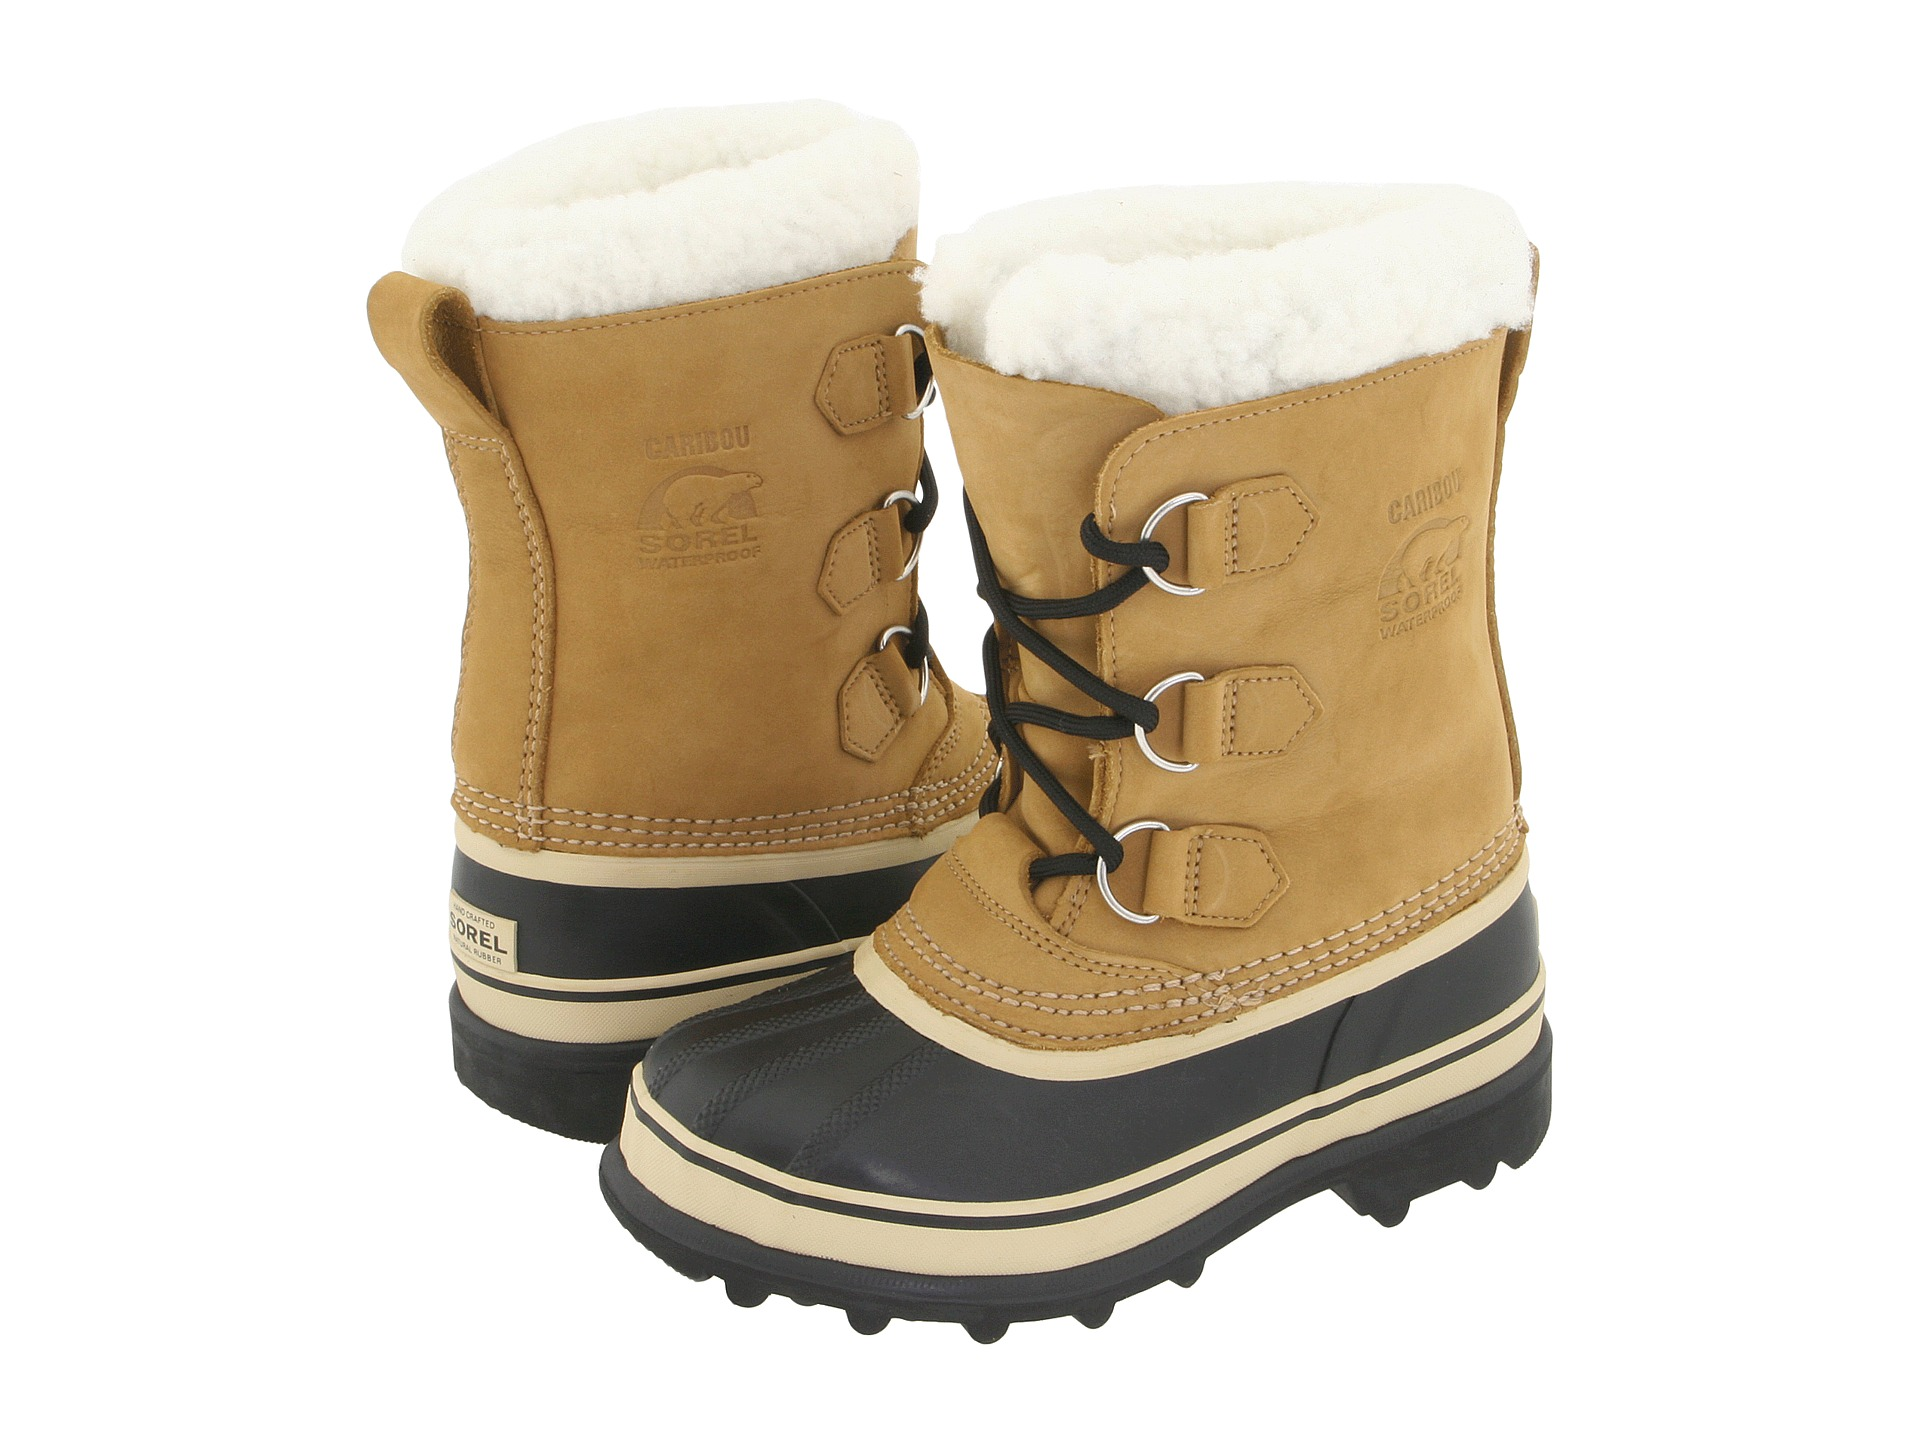 Kid Snow Boots ClyAnOp5